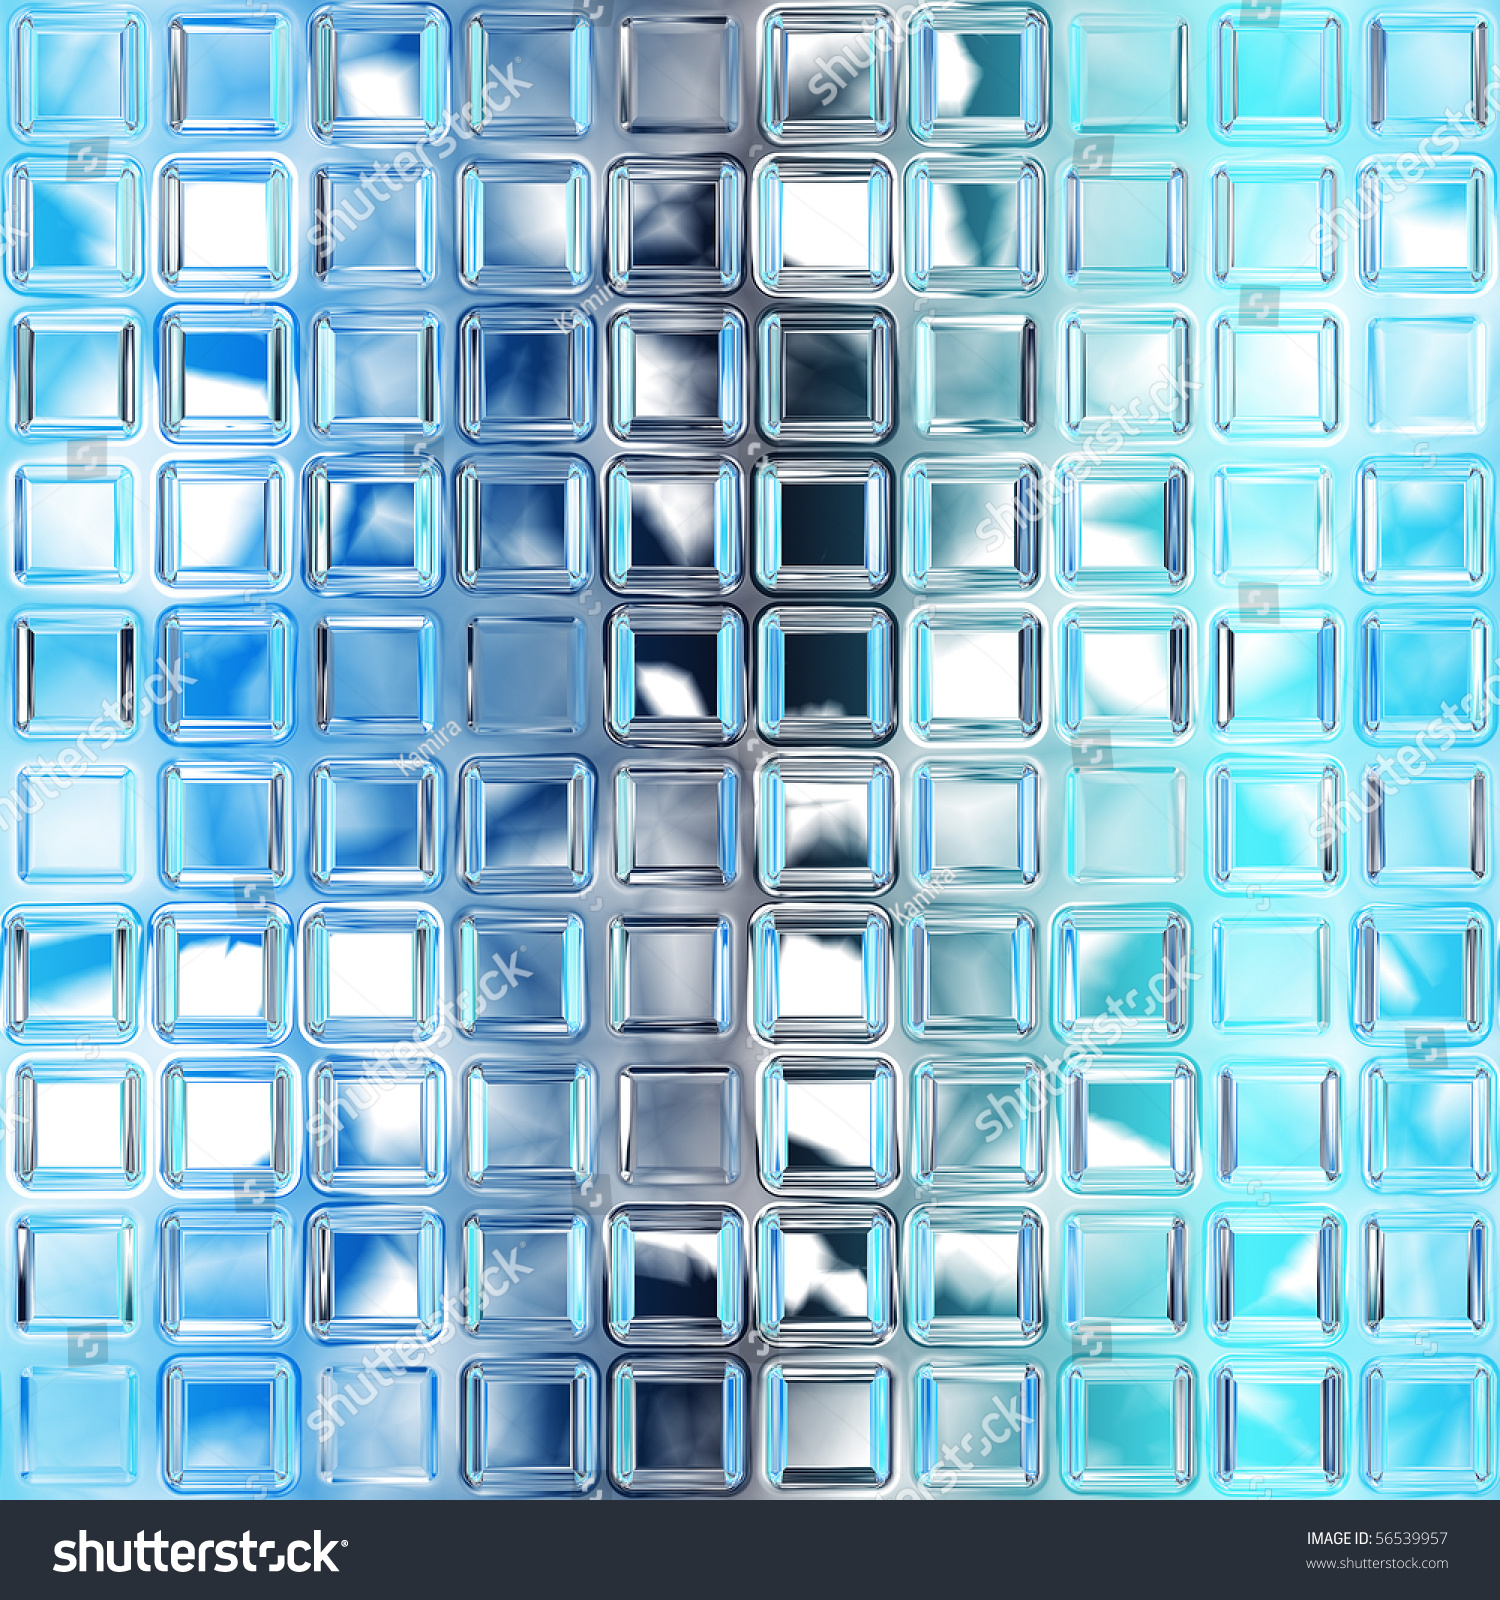 Seamless Blue Glass Tiles Texture Background Stock